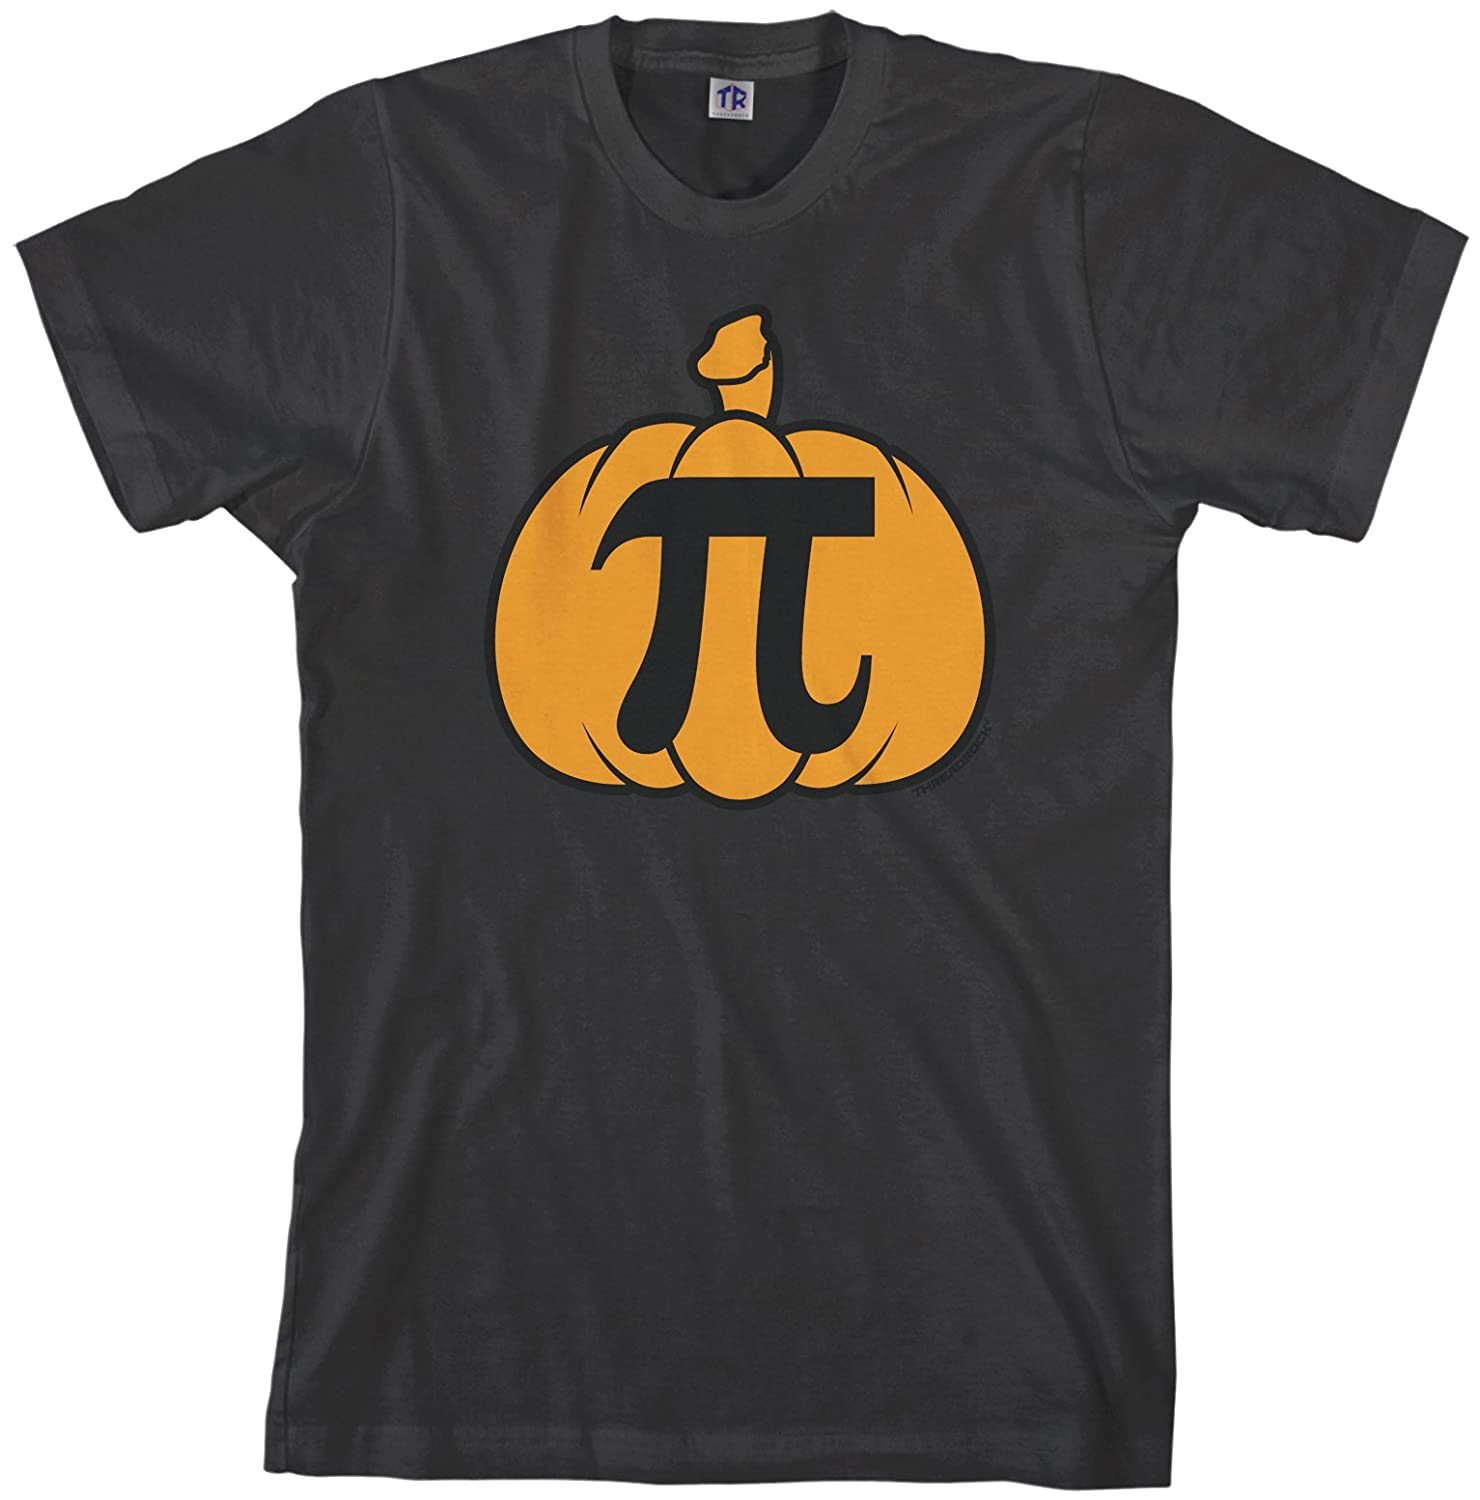 56b36513 Amazon.com: Threadrock Men's Pumpkin Pi T-Shirt: Clothing